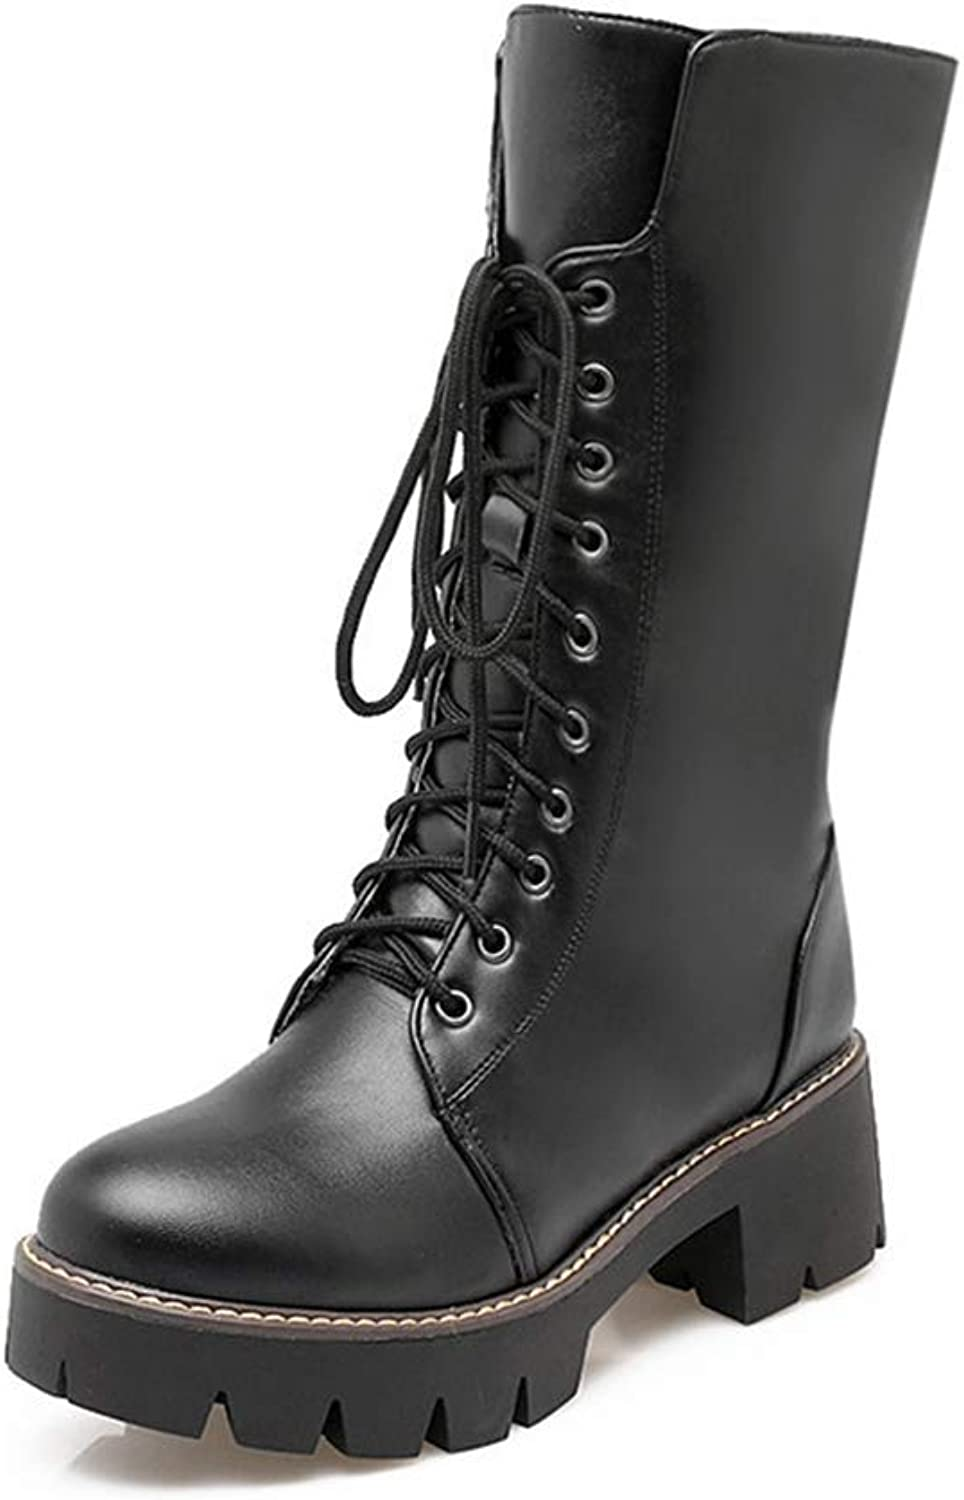 Hoxekle Women Mid Calf Female Winter Long Boot Thick Platform Lace Up Mid Heel Black White Fashional Outdoor shoes